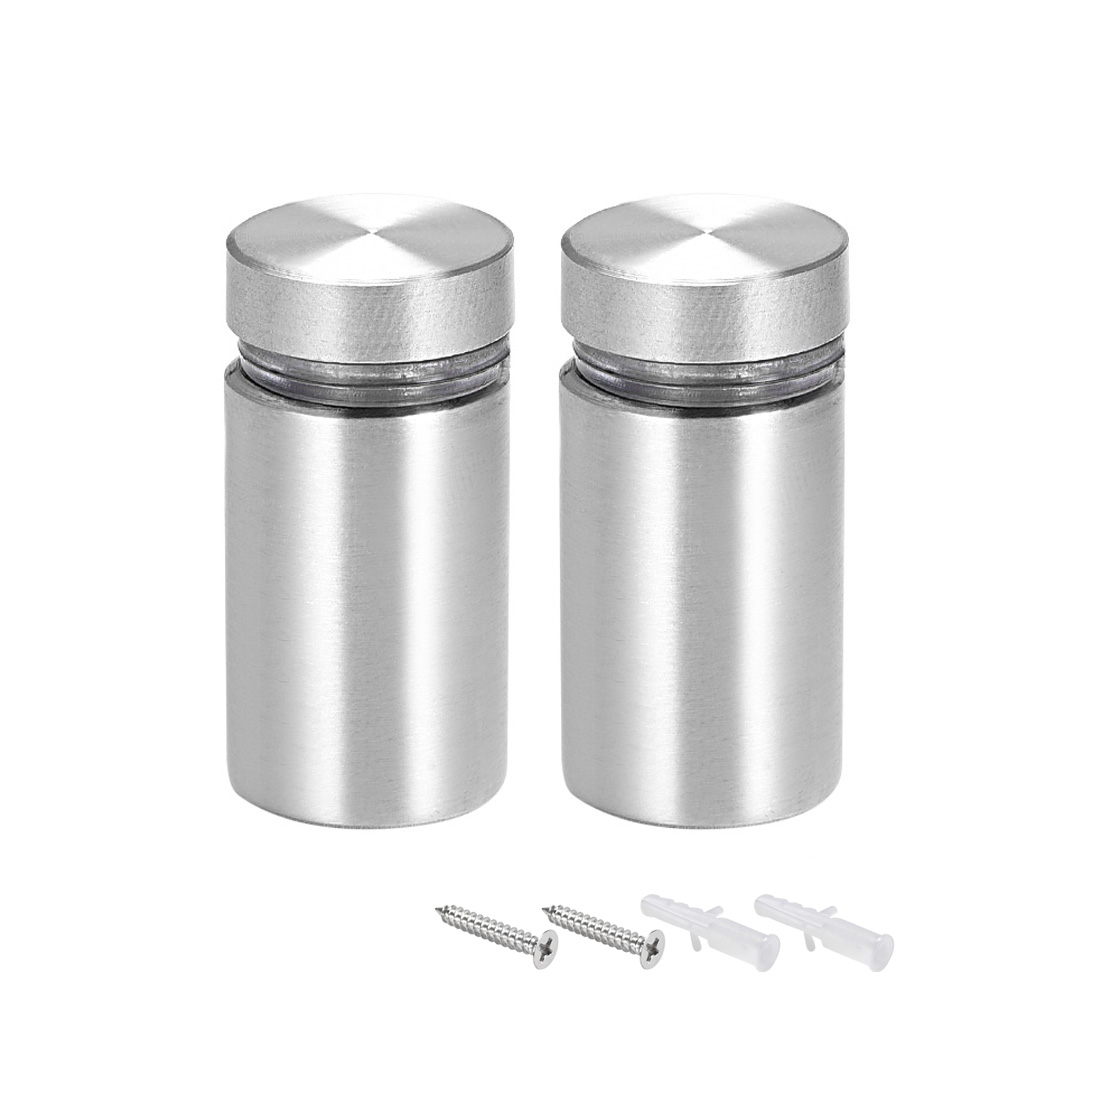 Glass Standoff Mount Solid Stainless Steel Wall Standoff Holder 16mmx28mm 2 Pcs